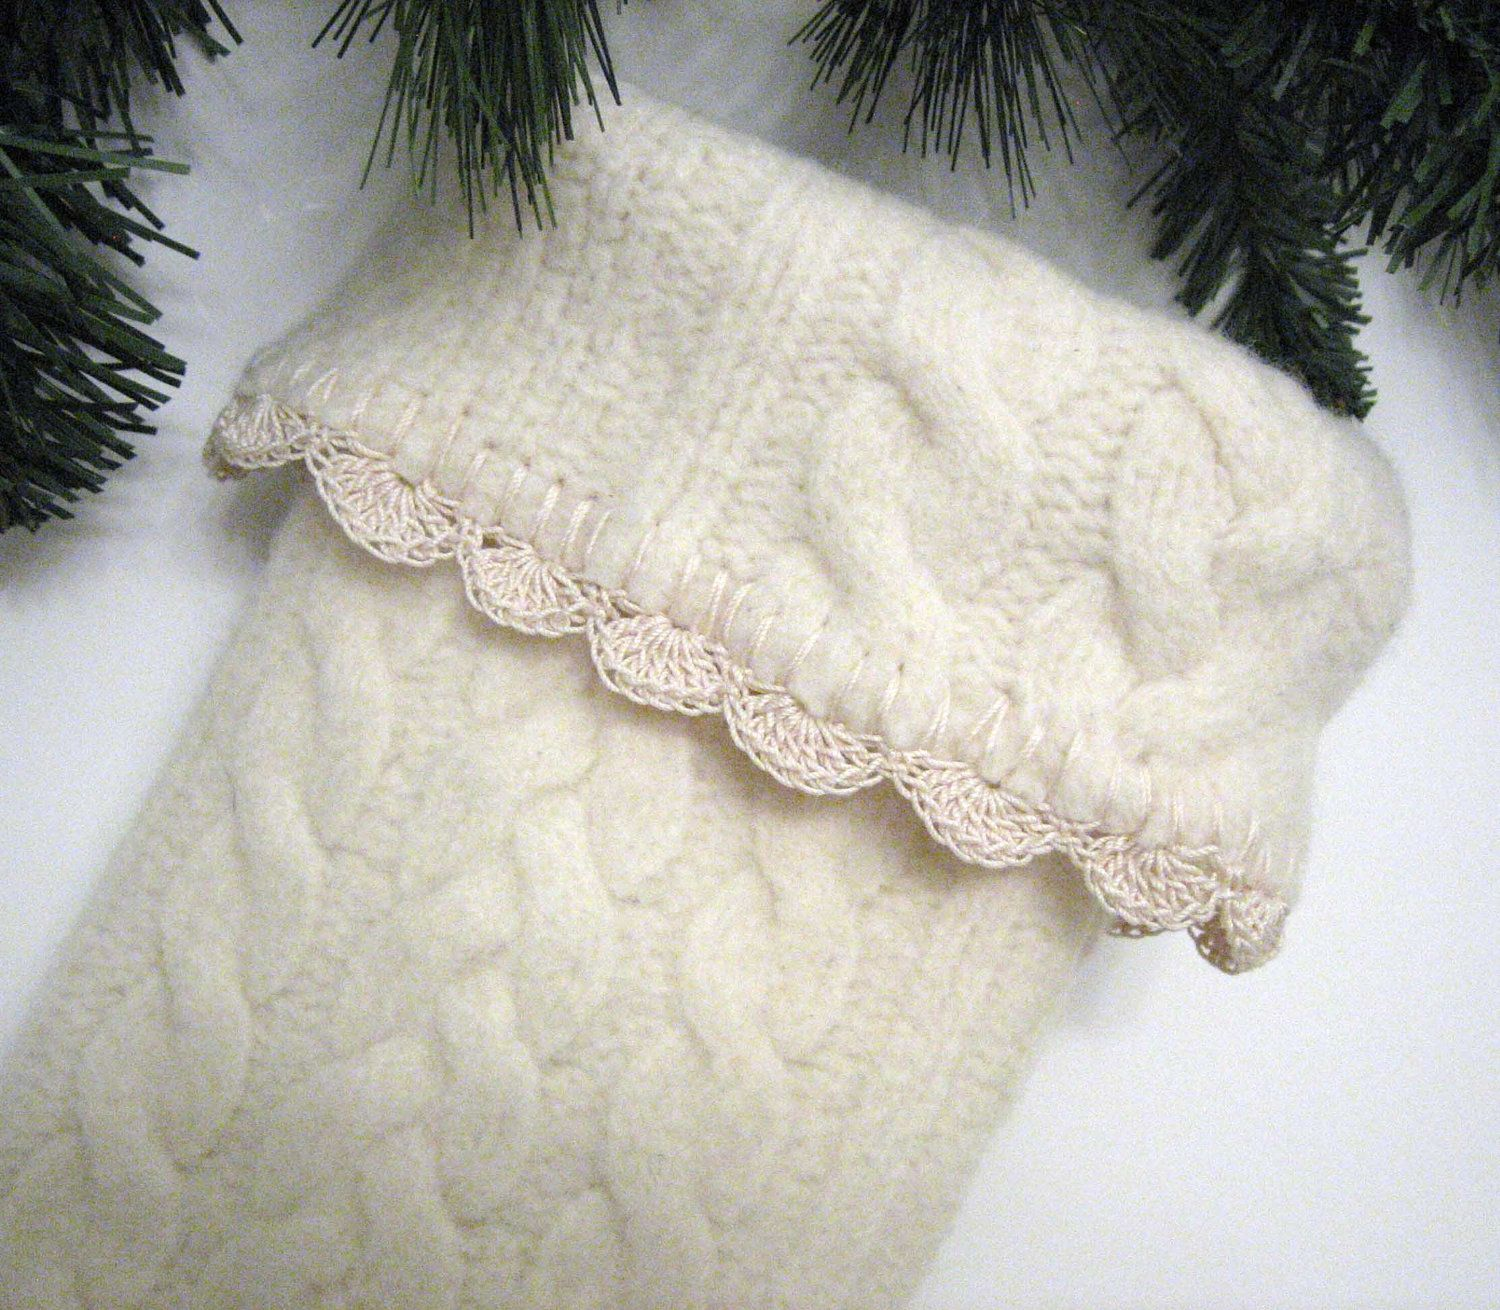 Knitted wedding decorations  Winter White Cable Knit Christmas Stocking Handmade from Felted Wool